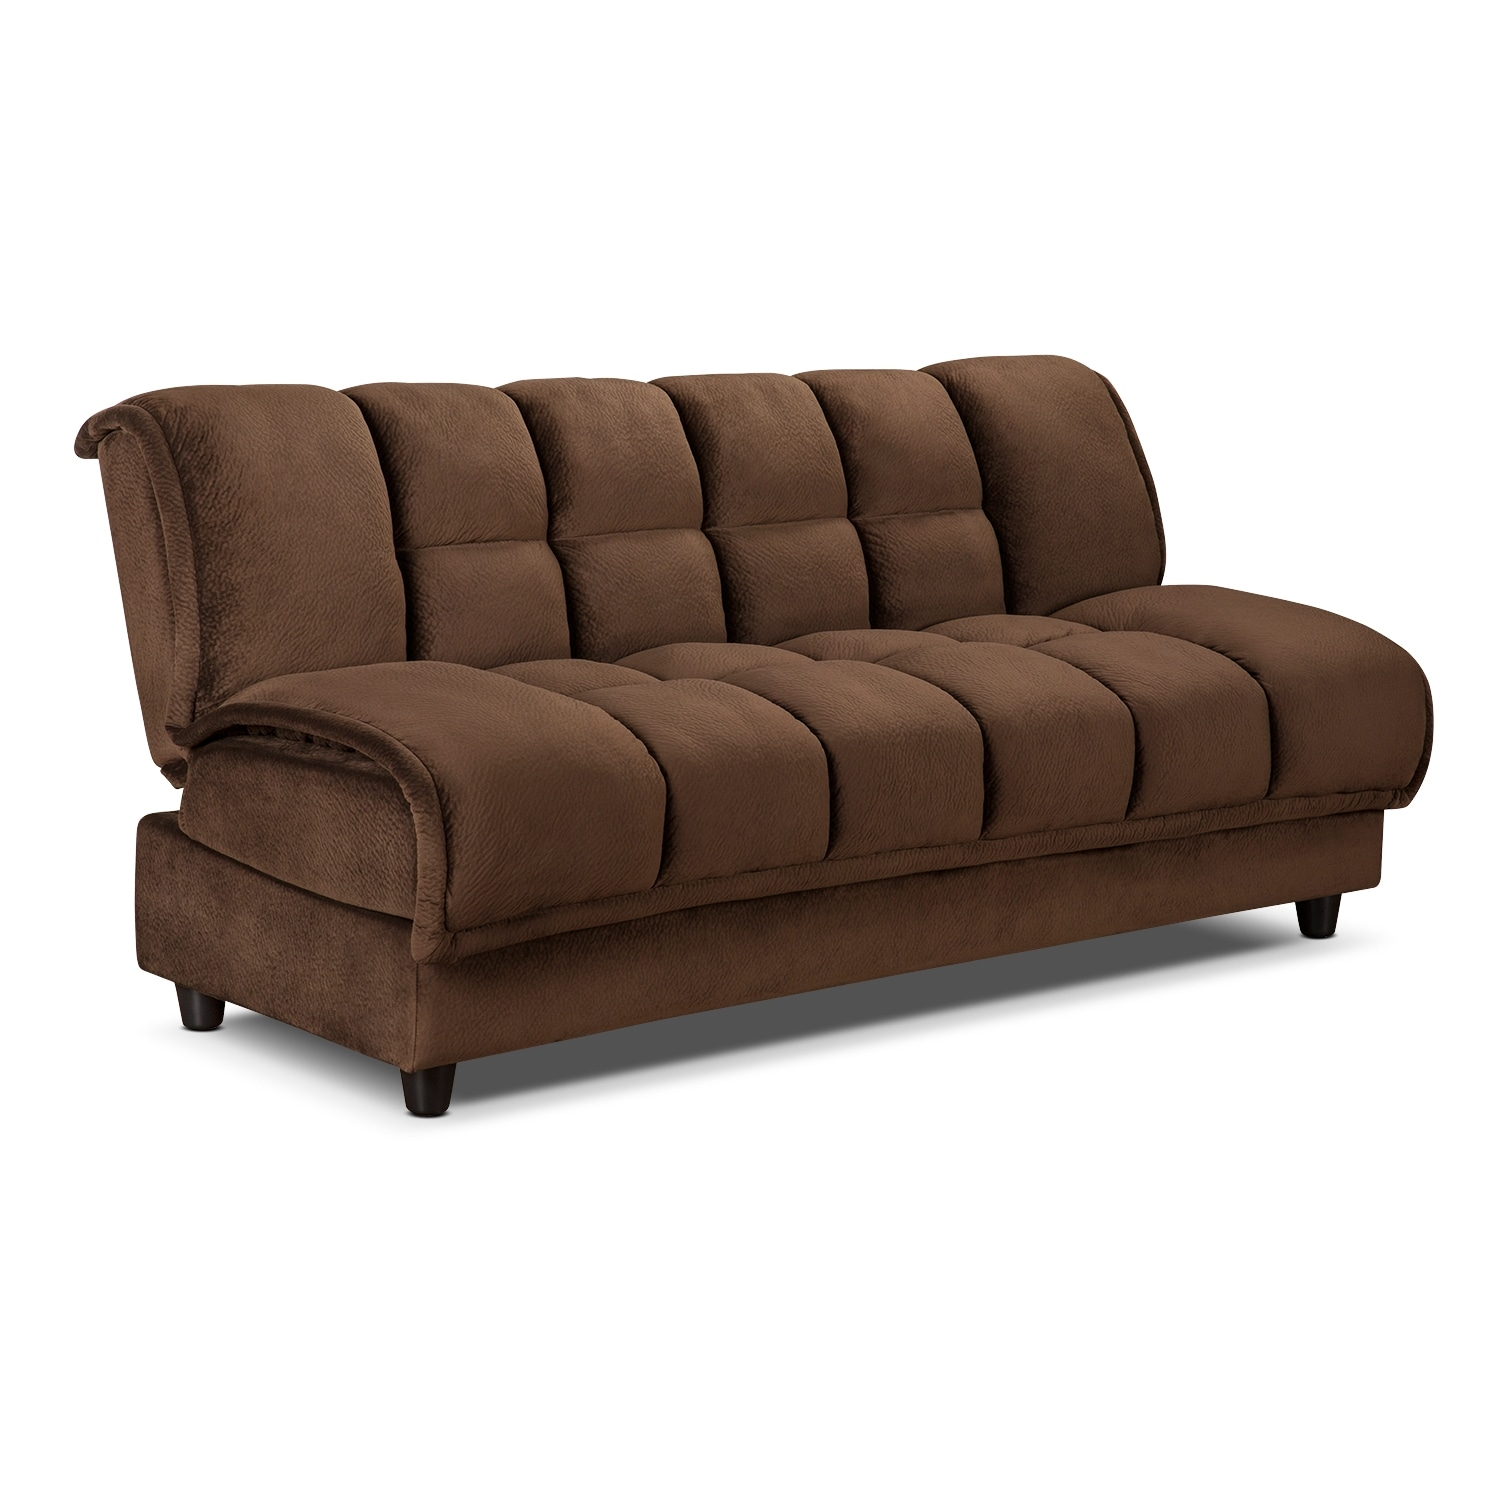 Bennett futon sofa bed espresso american signature for Sofa bed 91762